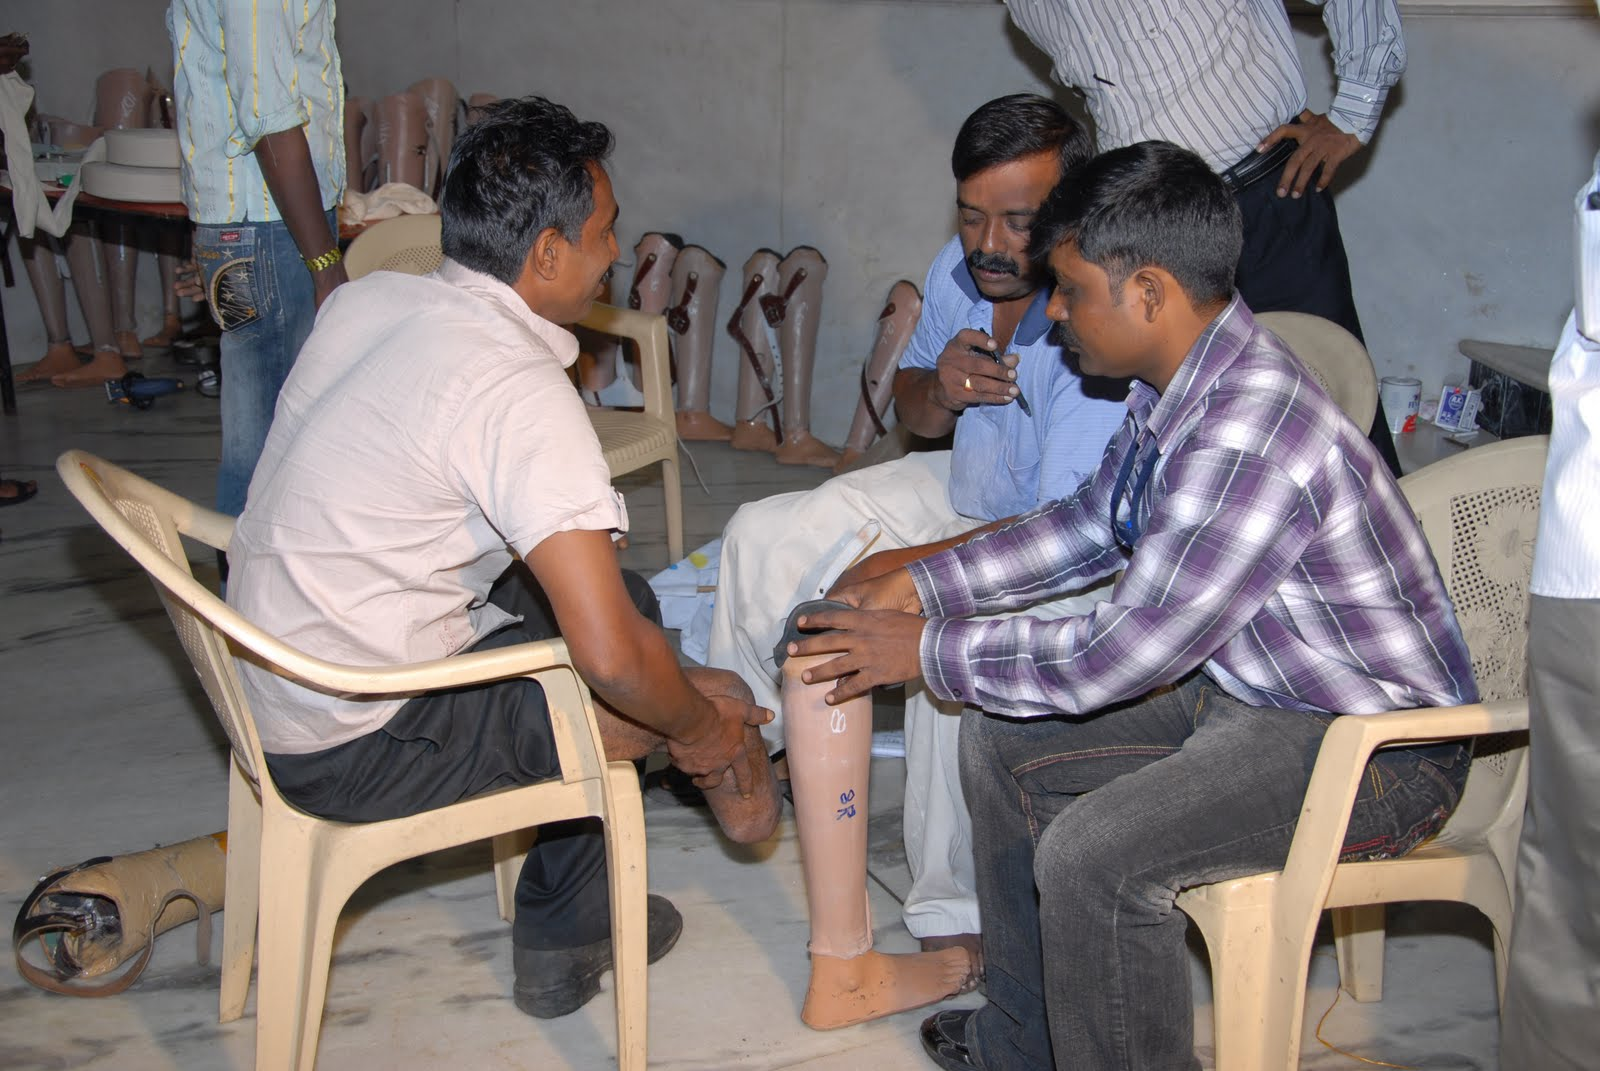 Sri Perumal Orthotic Center